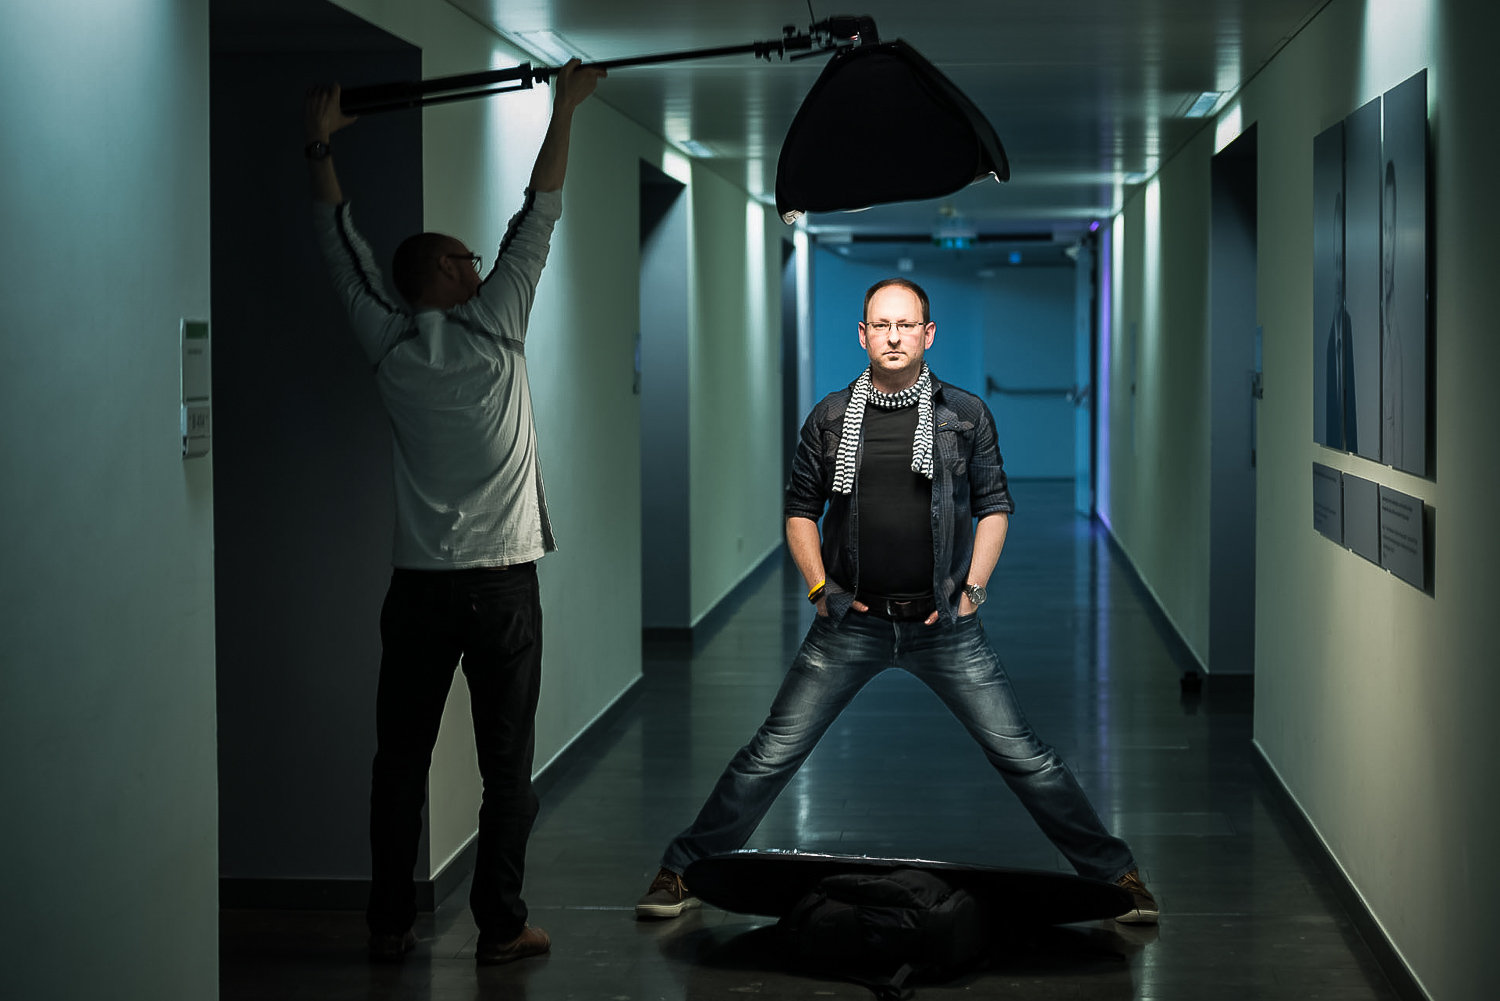 workshop-tejada-283.jpg